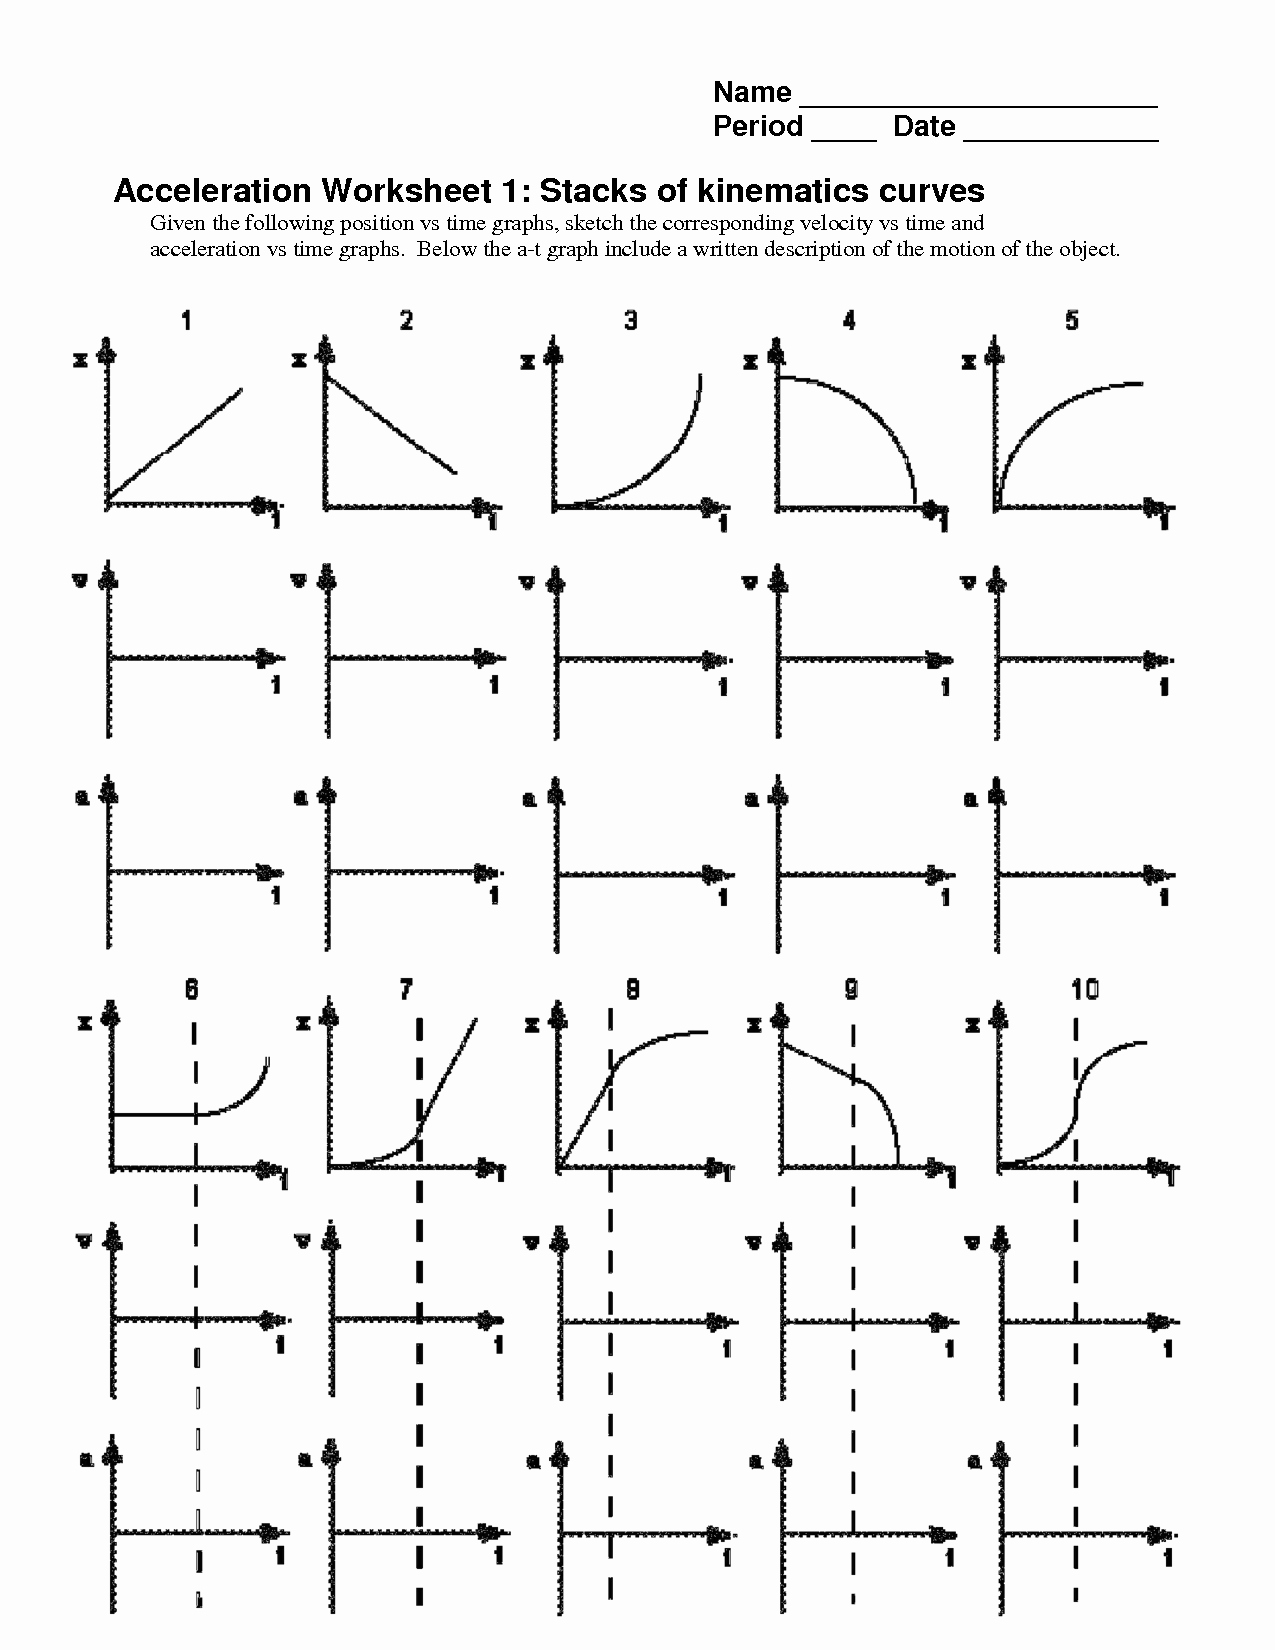 Motion Graphs Worksheet Answers Awesome Kinematics Motion Graph Worksheets the Best Worksheets